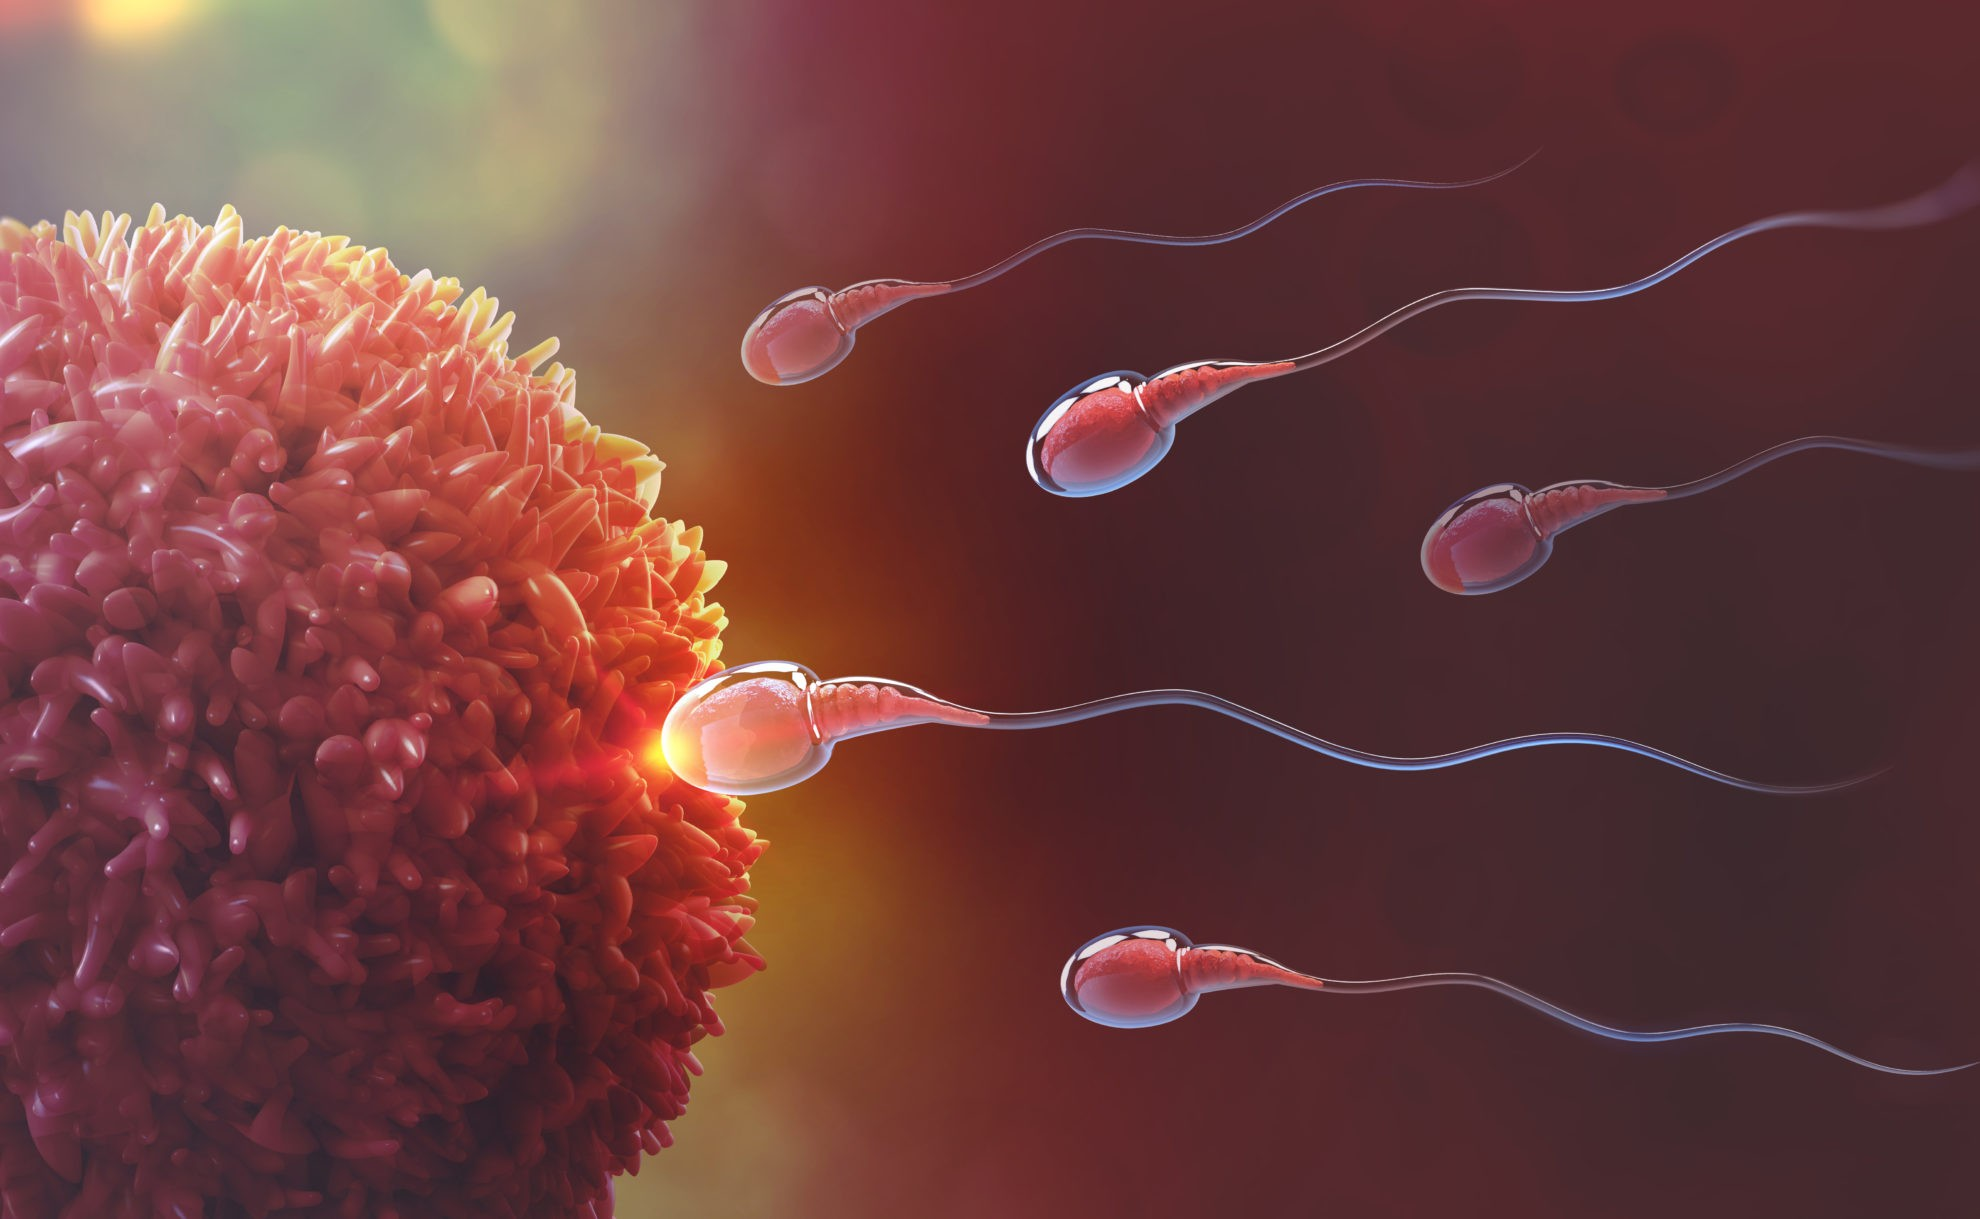 Human Reproduction And Fertilization